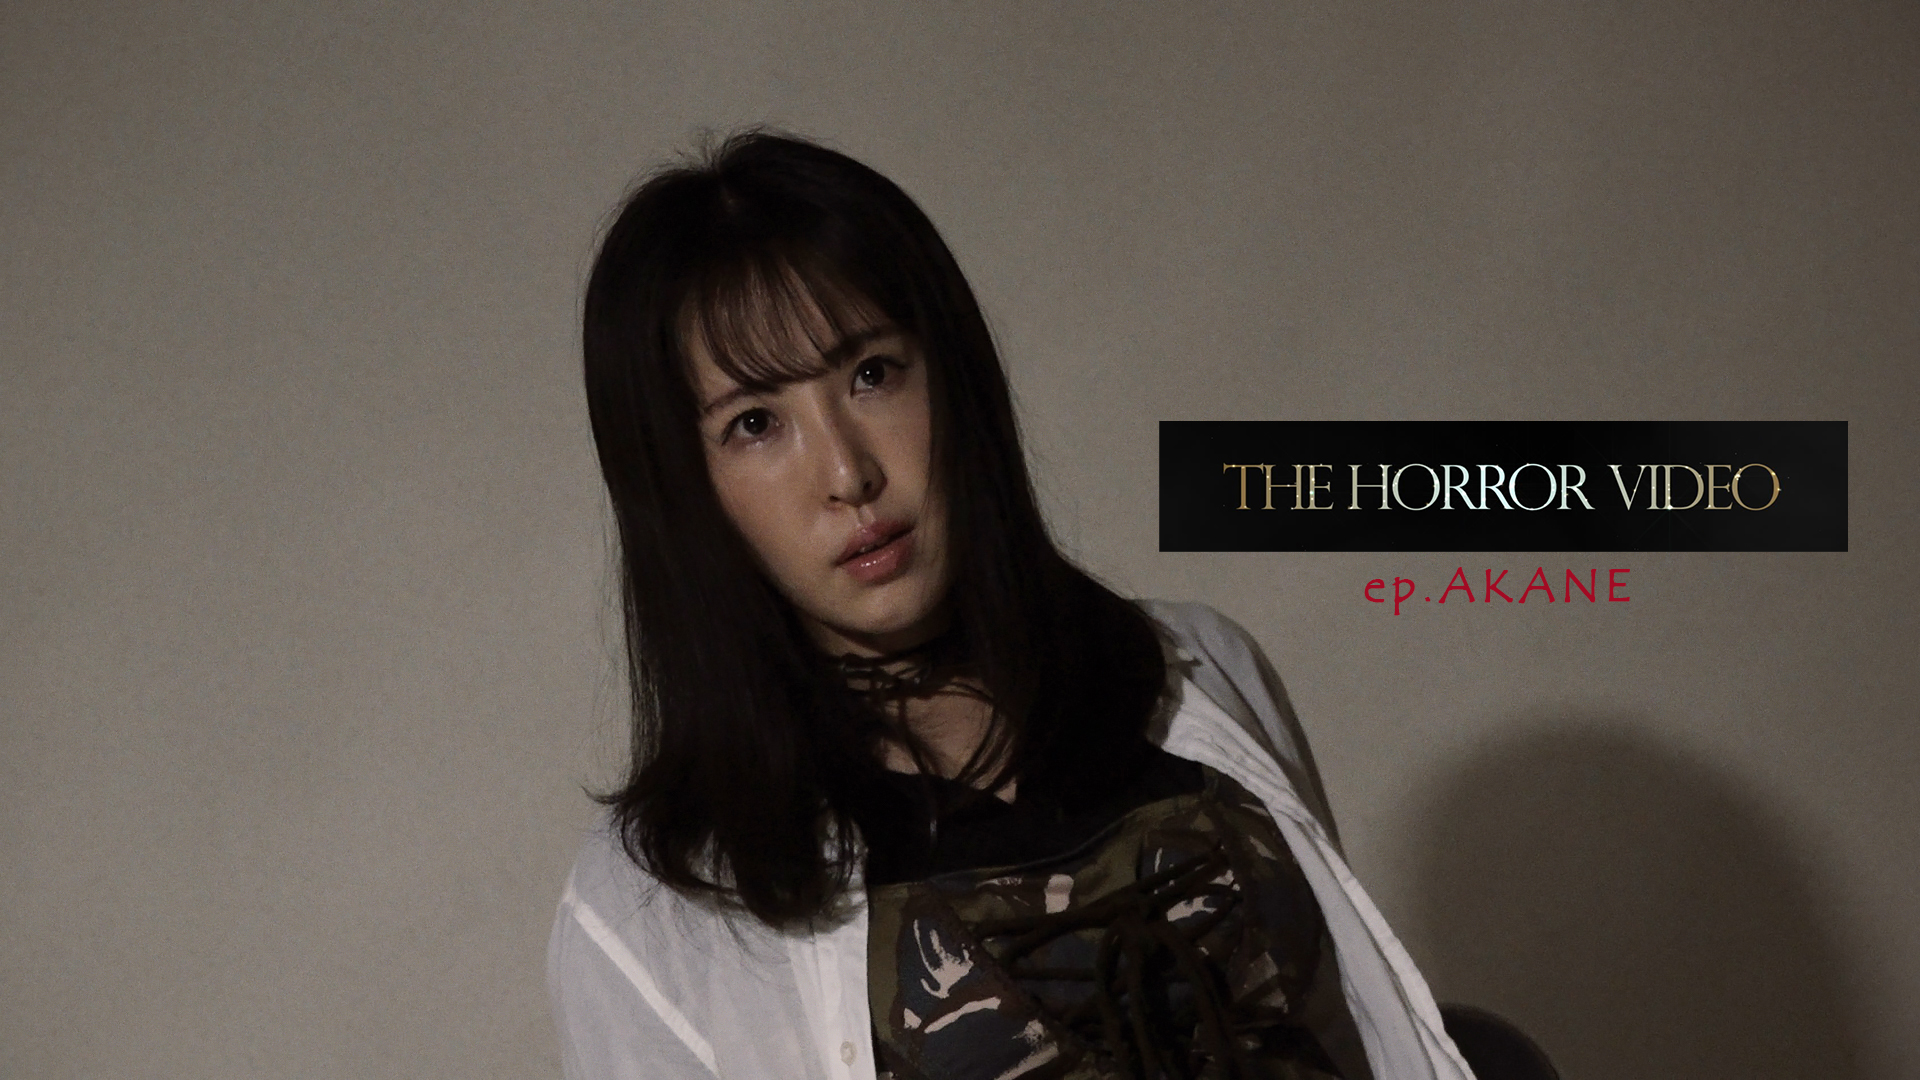 THE HORROR VIDEO 「AKANE」 ep.4